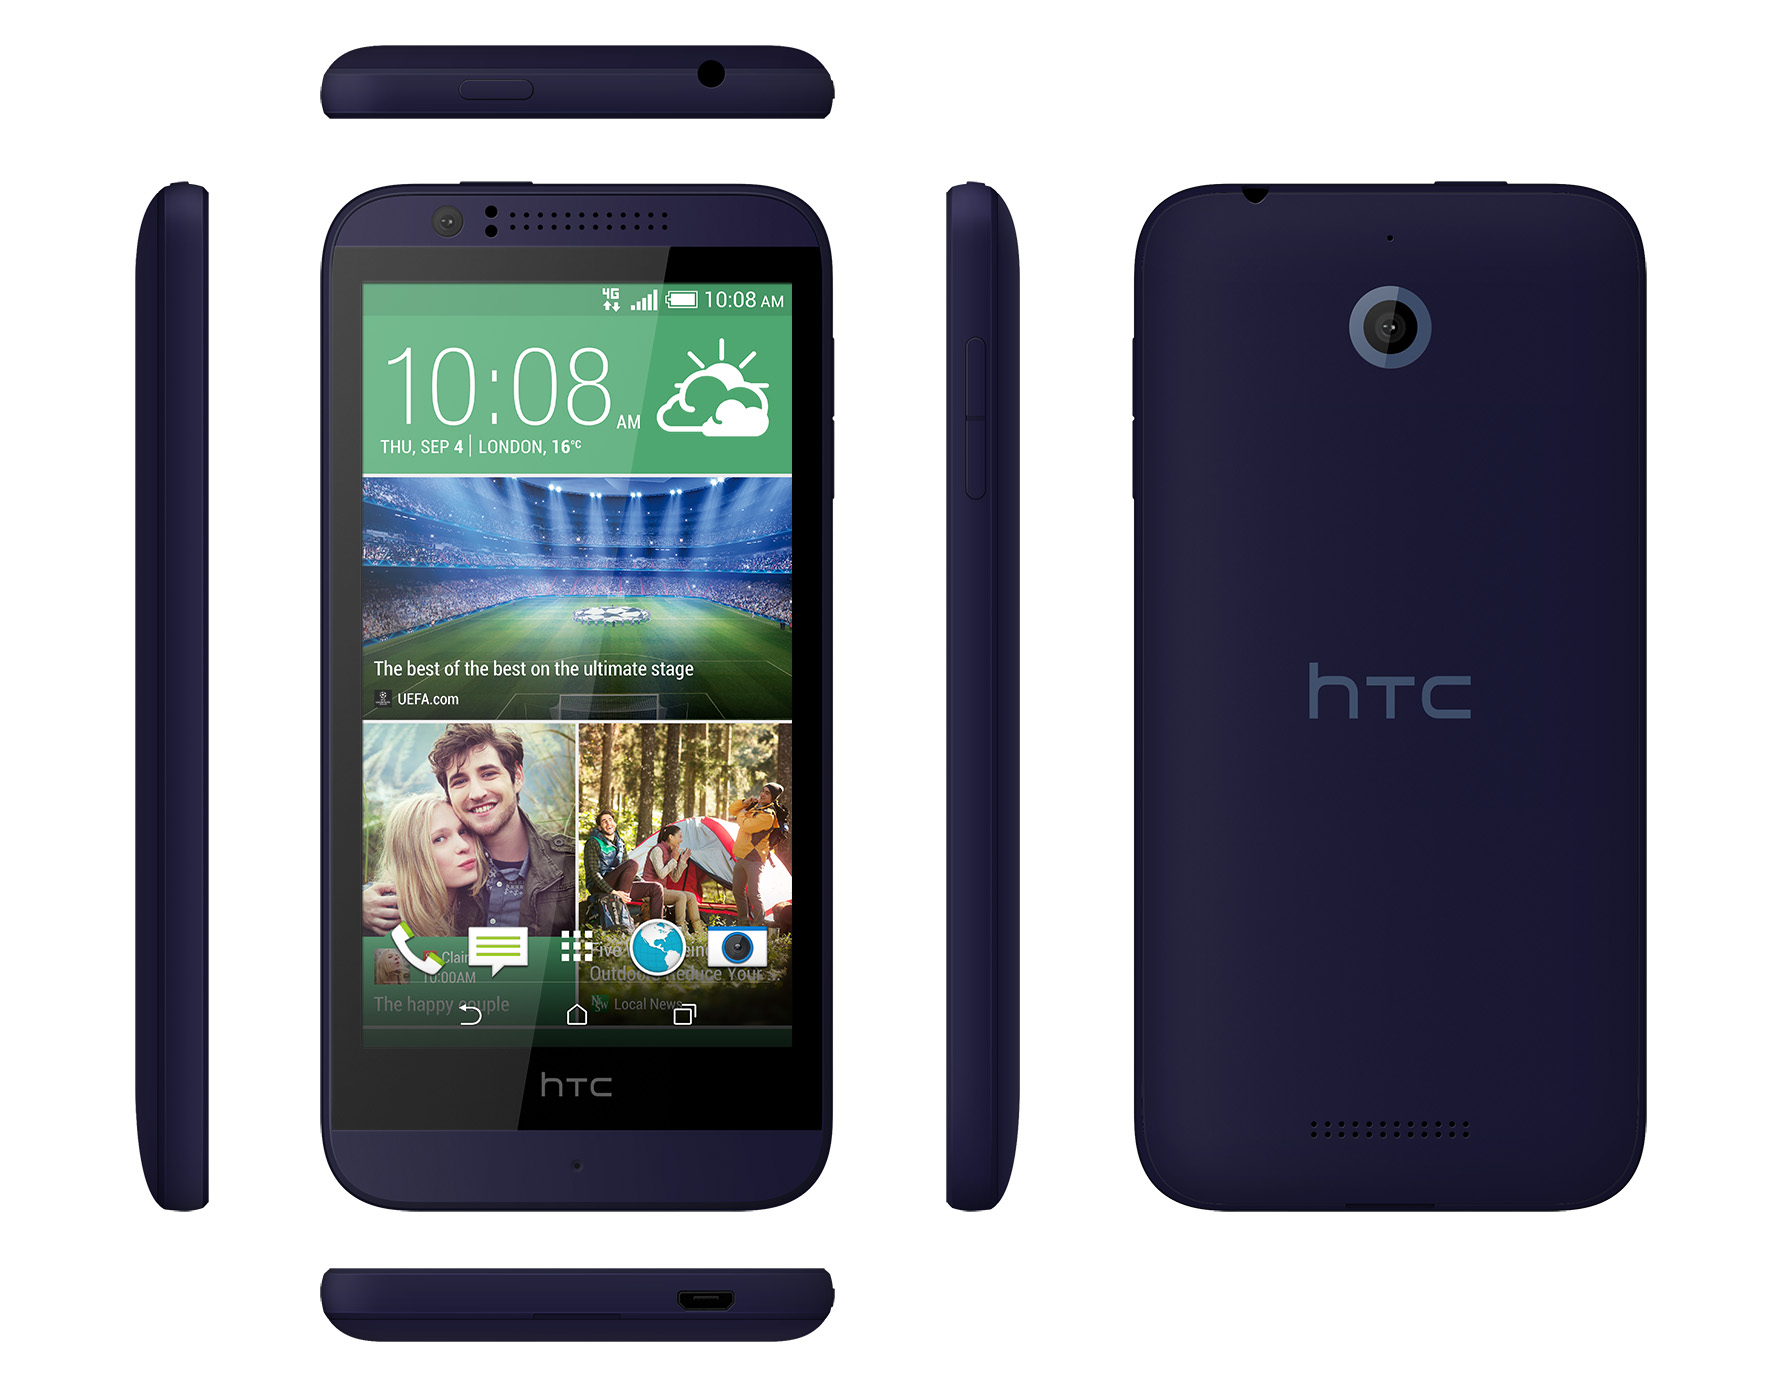 Camera Android Phones Pay As You Go microsoft lumia 640 archives smartphone 2016 smartphones pay as you go deals htc desire 510 at a139 97 lumia